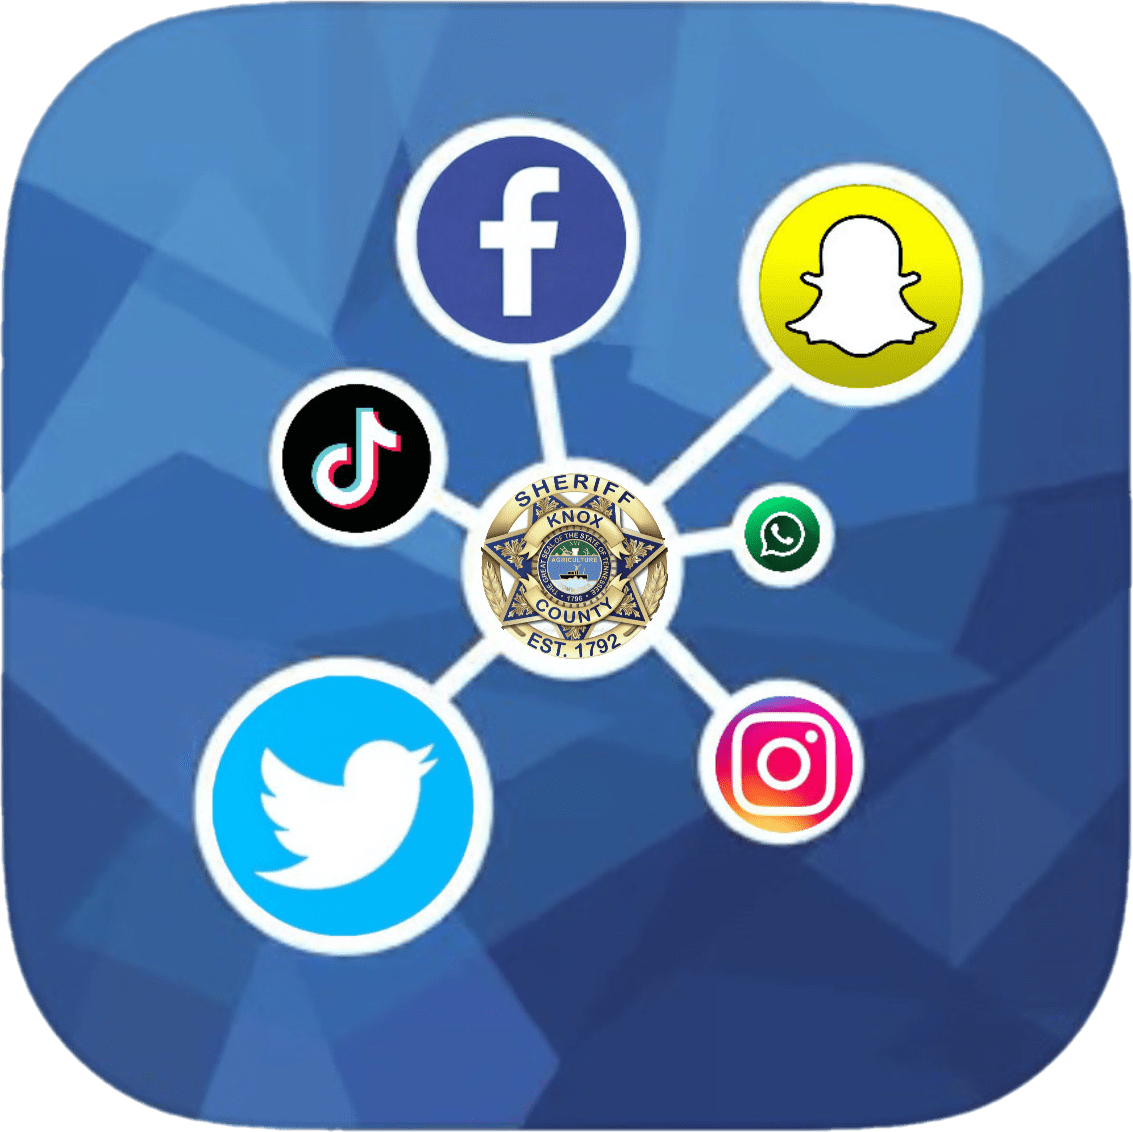 Linked social media icons with KCSO badge on blue background